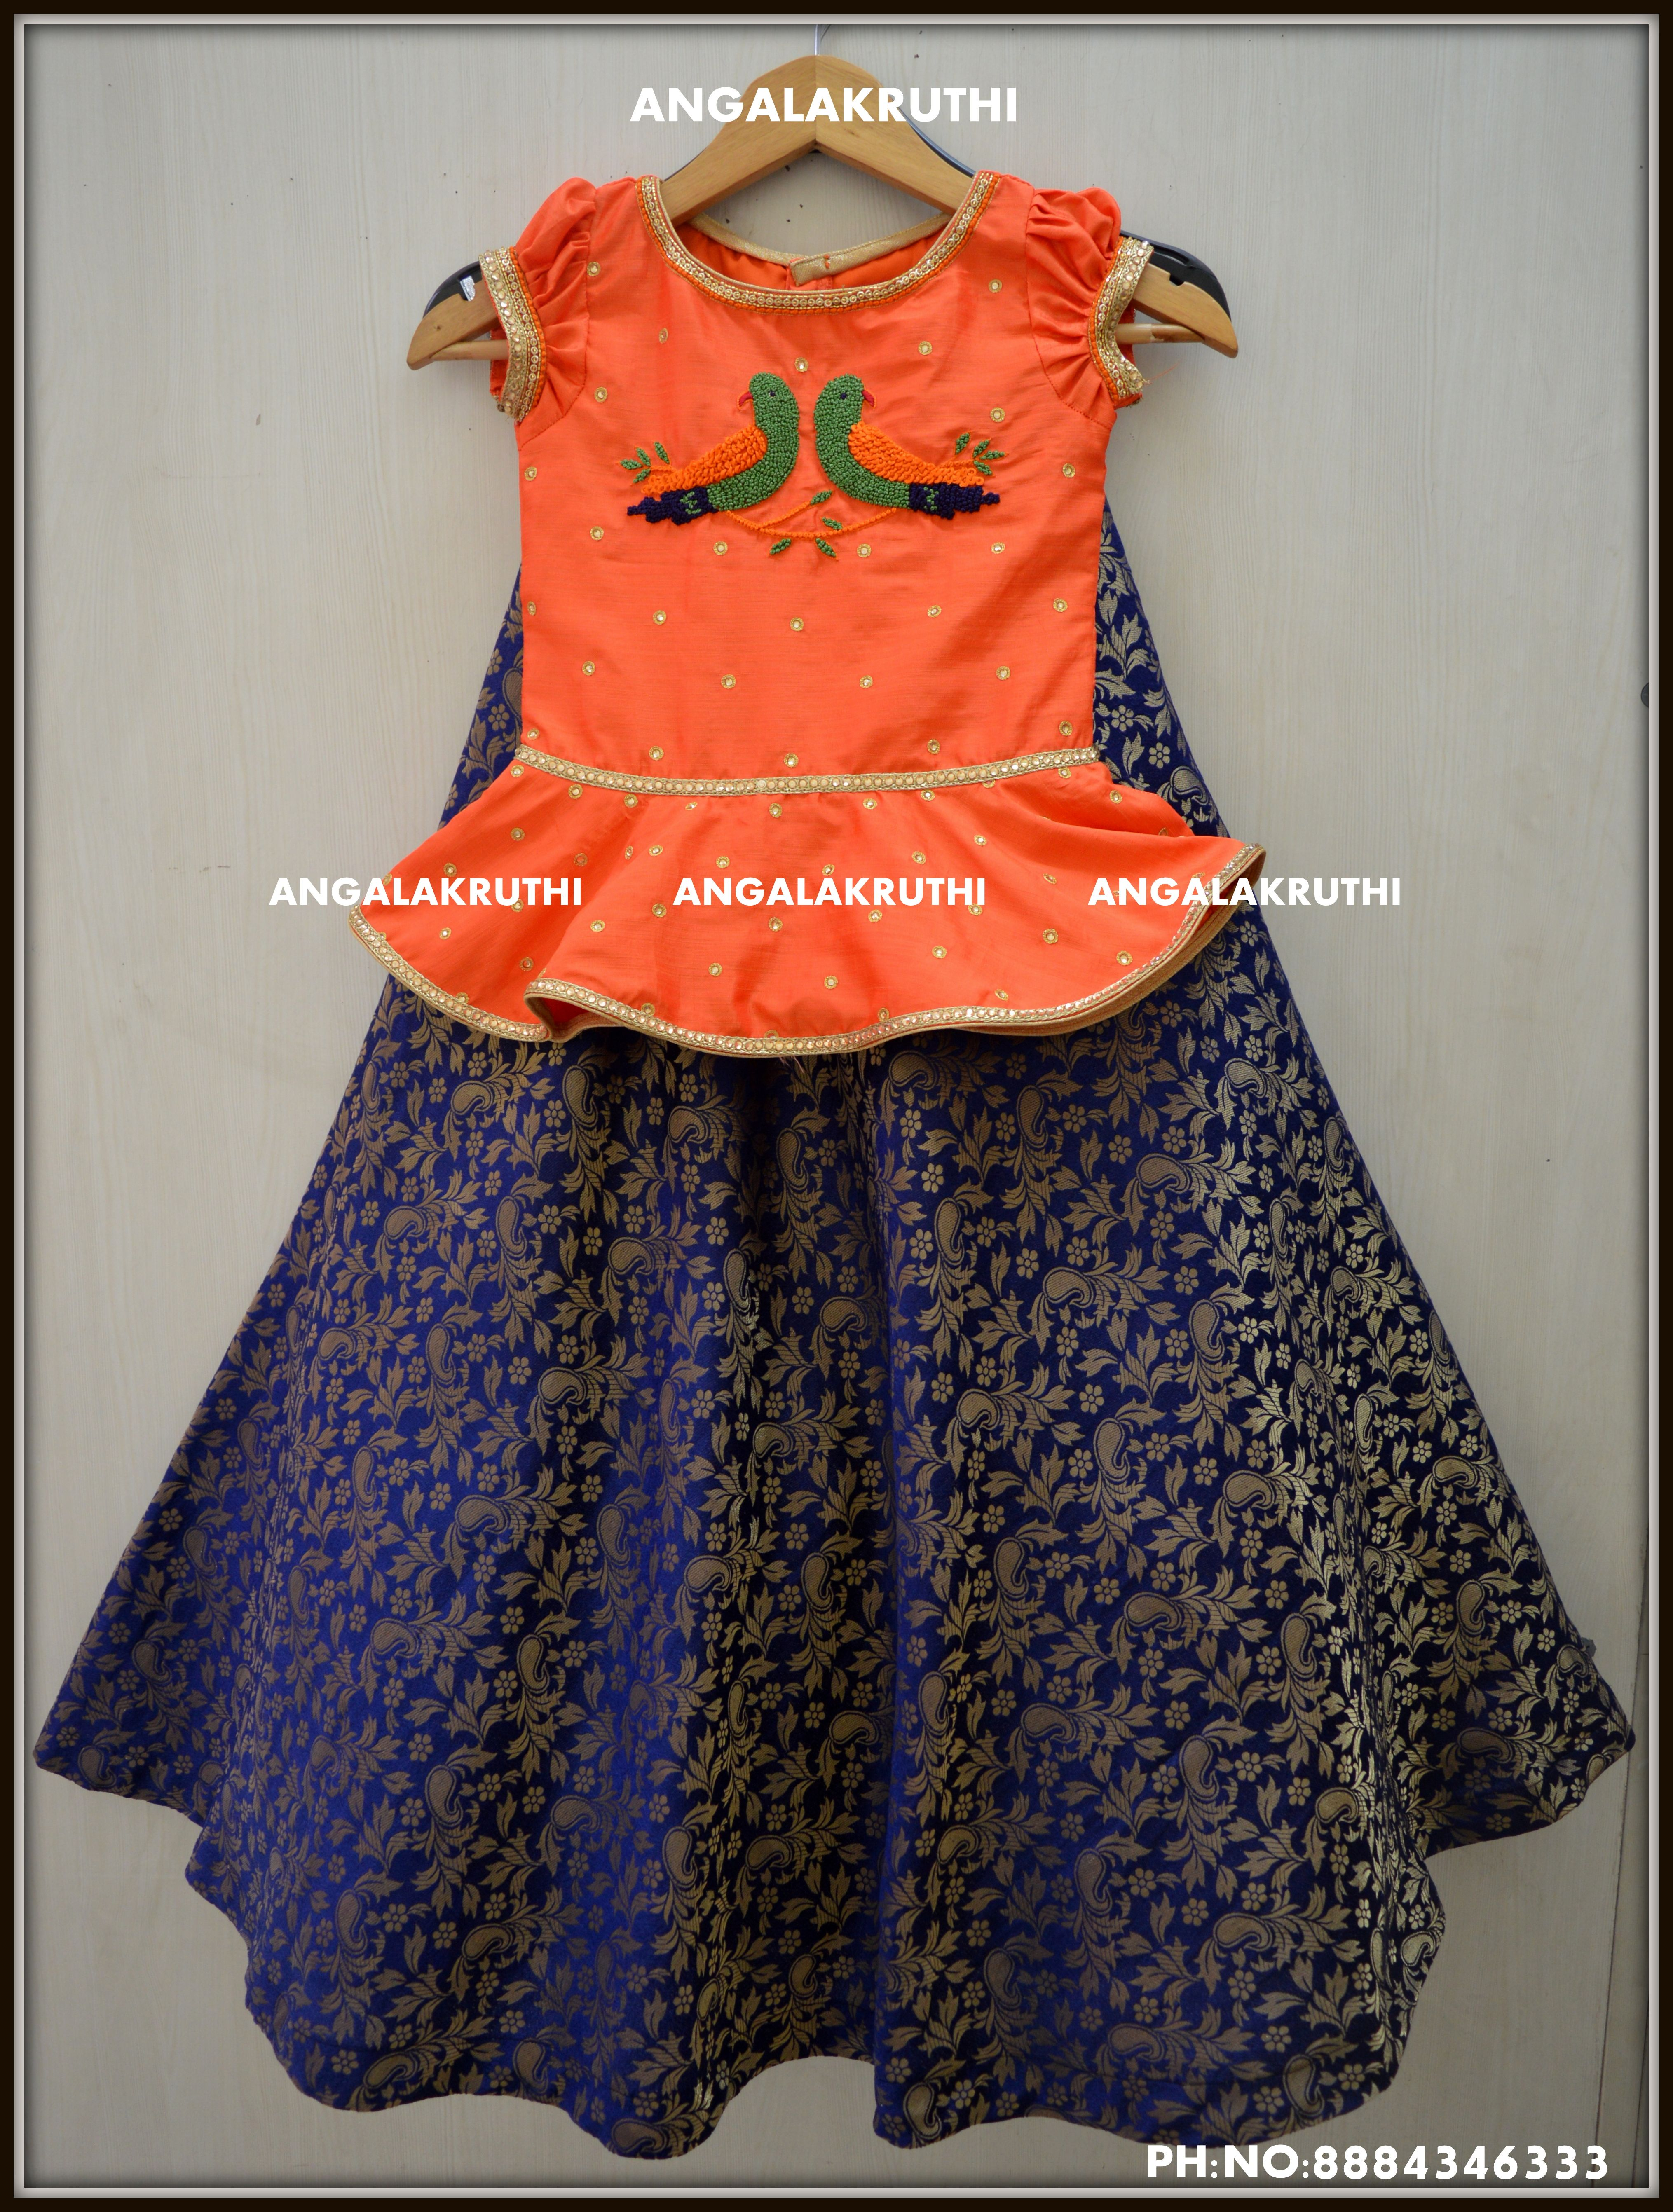 0a7ff5ec2bb #peplum tops and skirt designs by Angalakruthi boutique bangalore # Angalakruthi-custom designer boutiquw with online order placement service  and ...